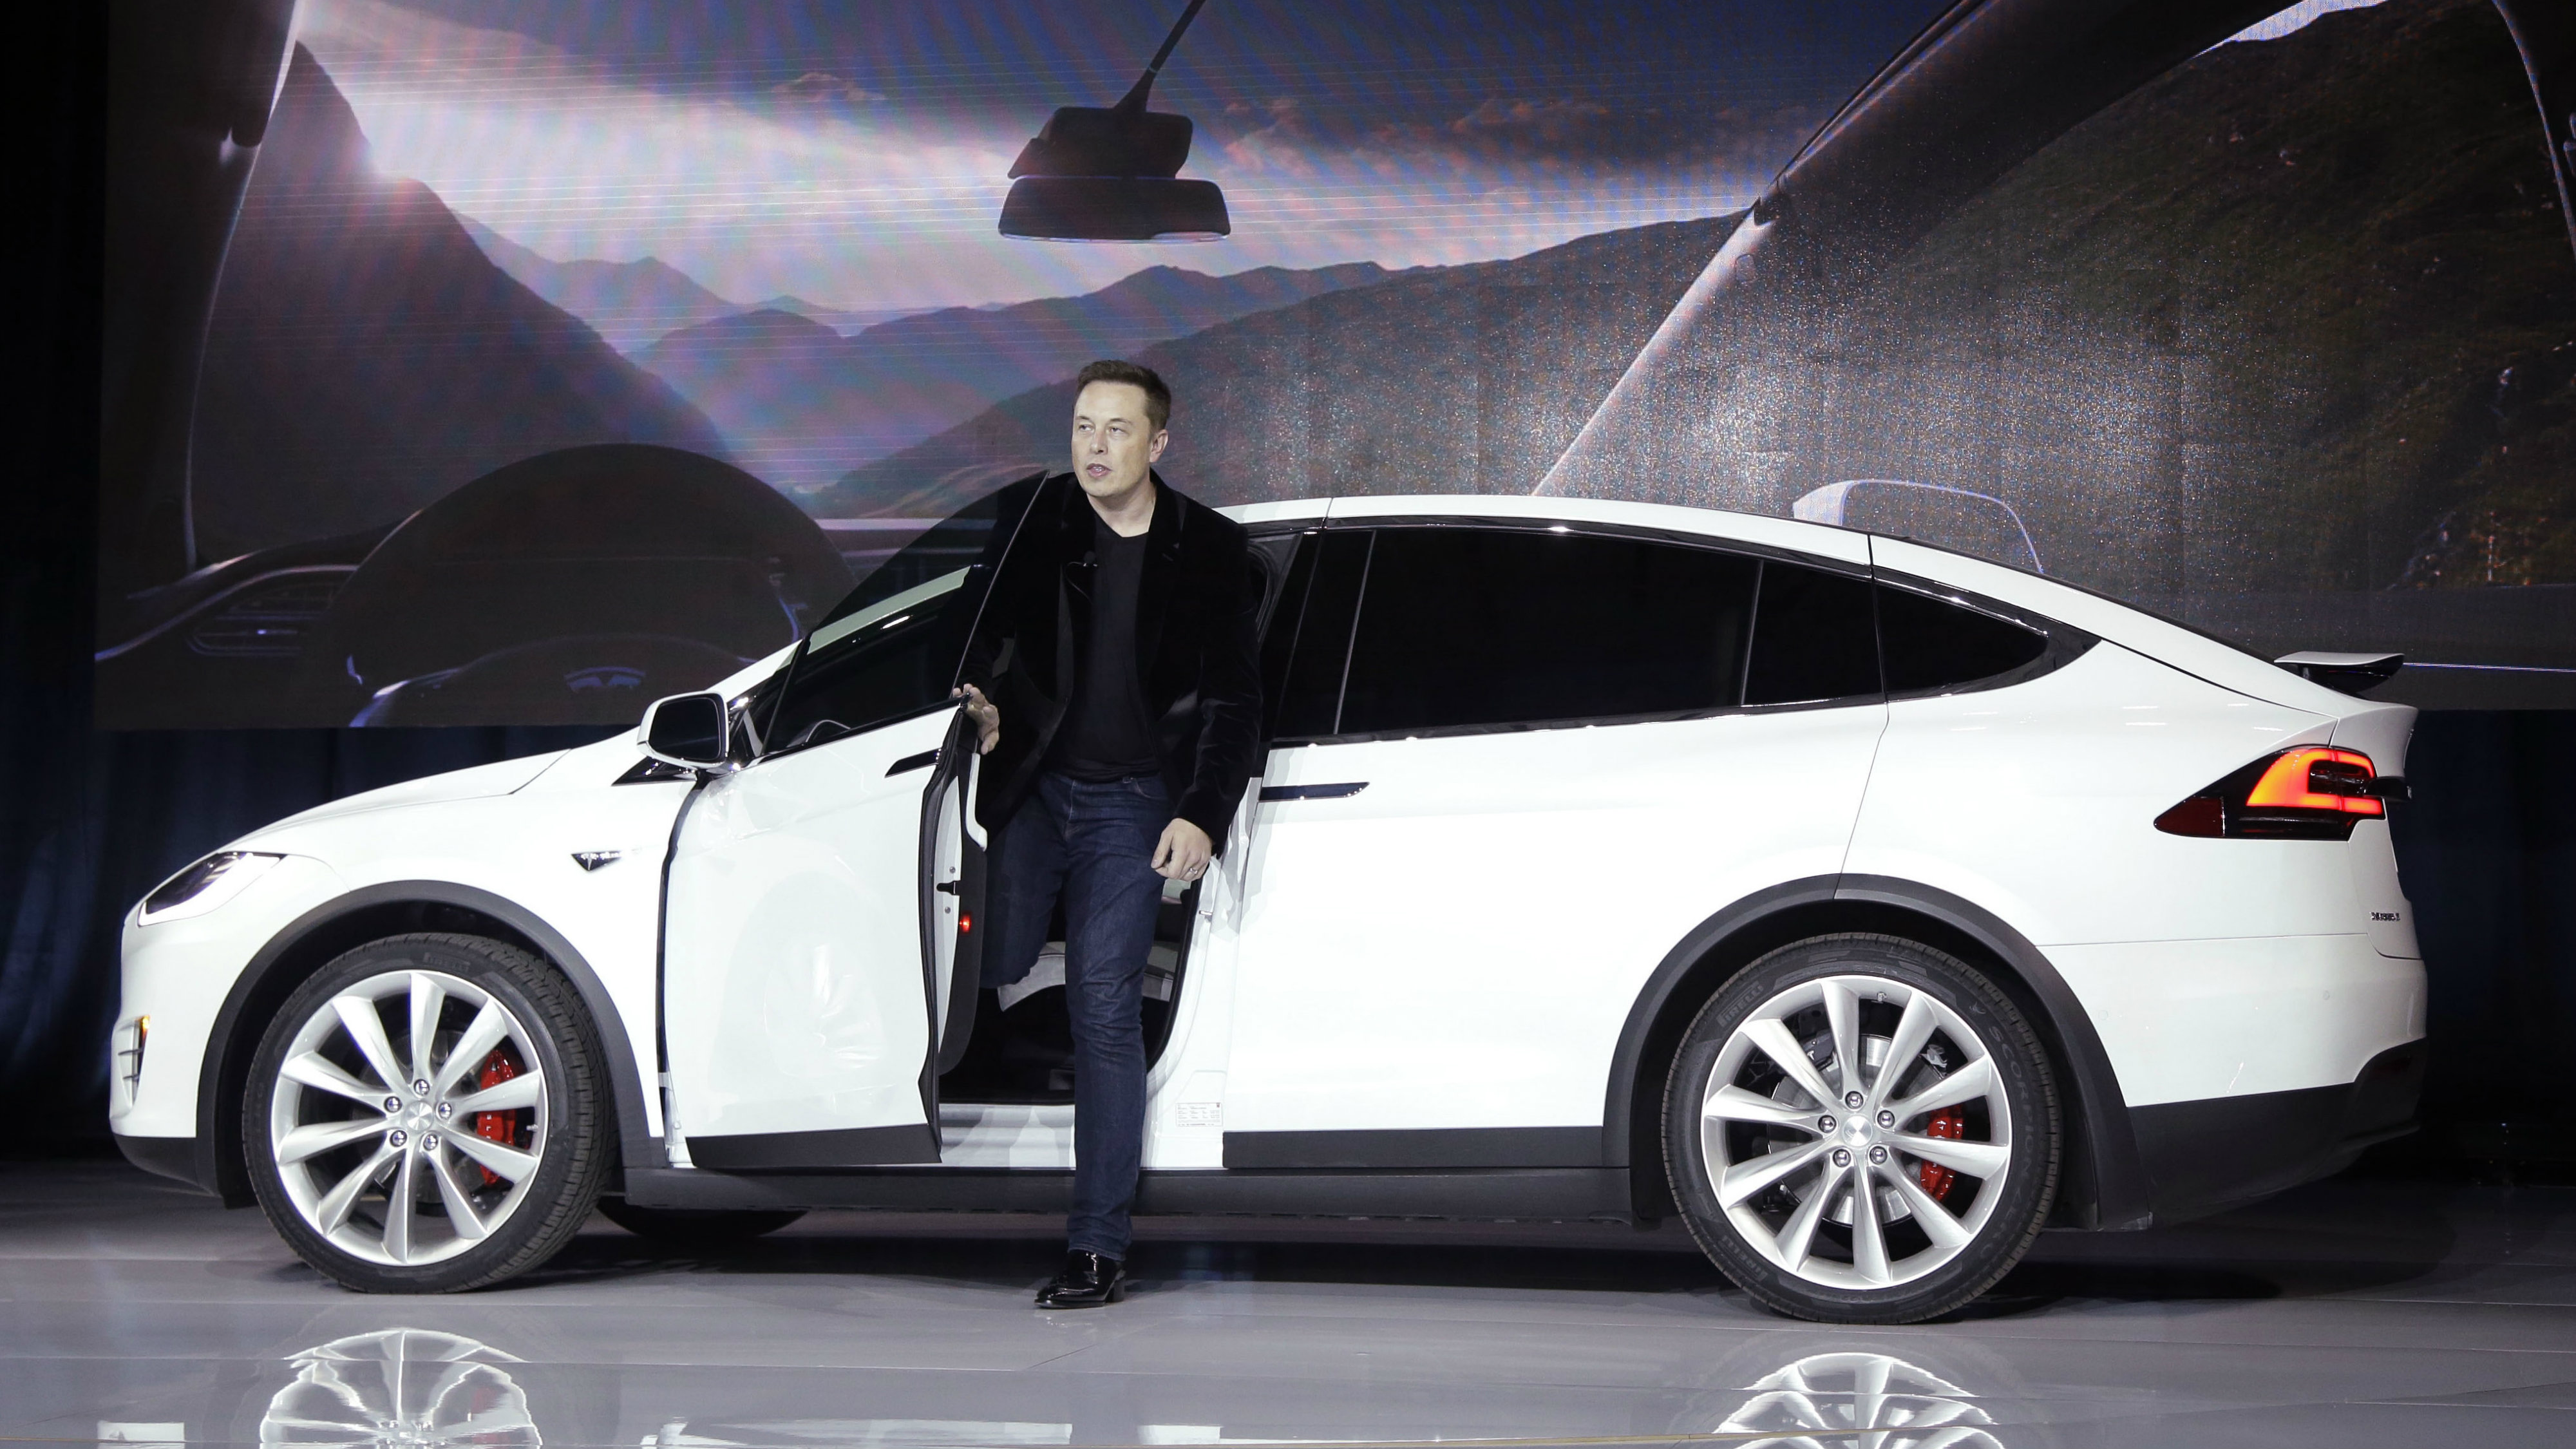 Elon Musk, CEO of Tesla Motors, introduces a new model in 2015